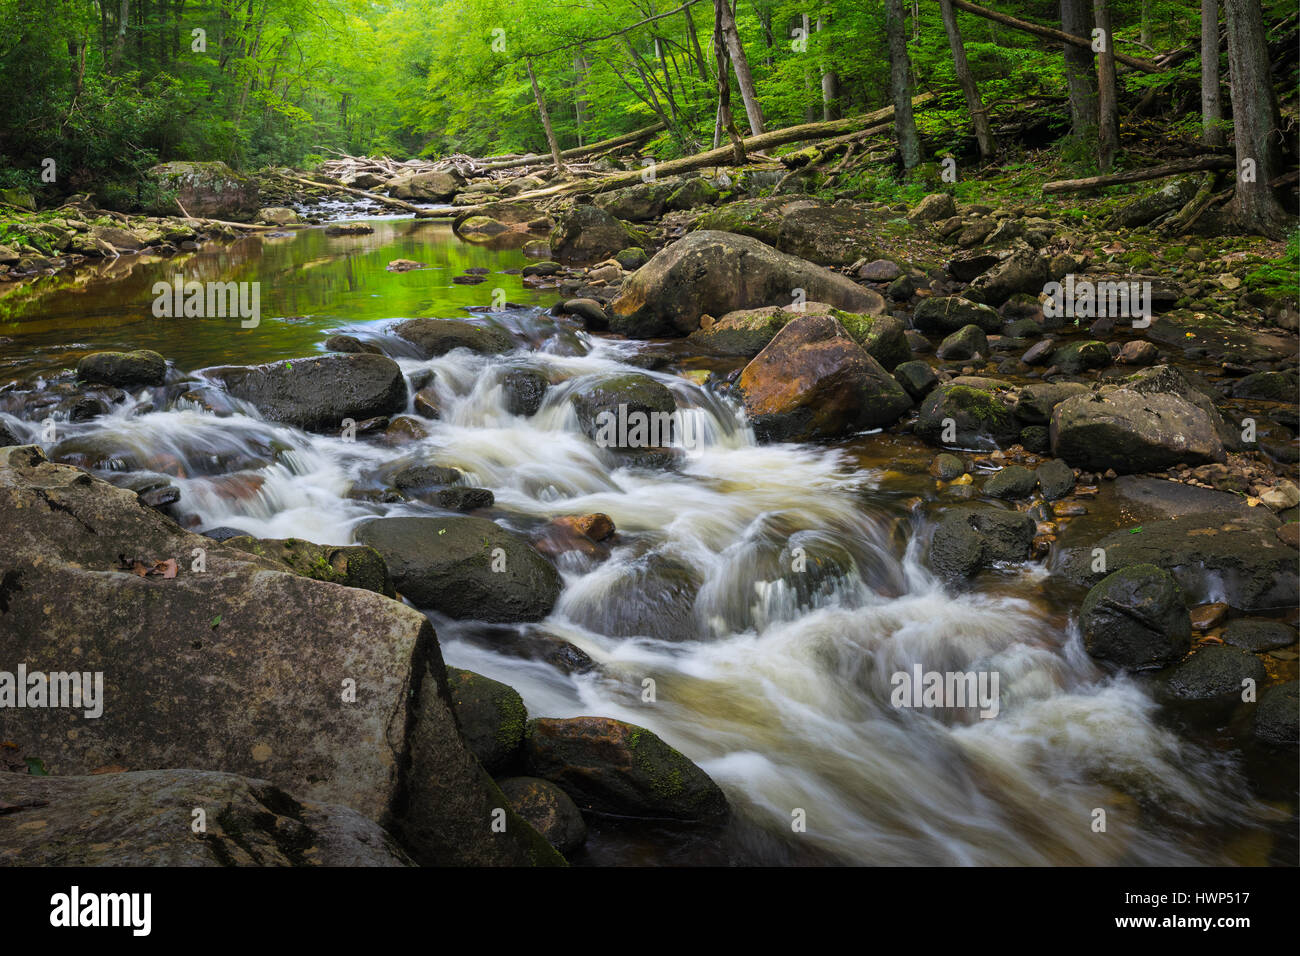 One of many cascades in the Otter Creek Wilderness, of West Virginia, the water providing a mirror for the surrounding - Stock Image